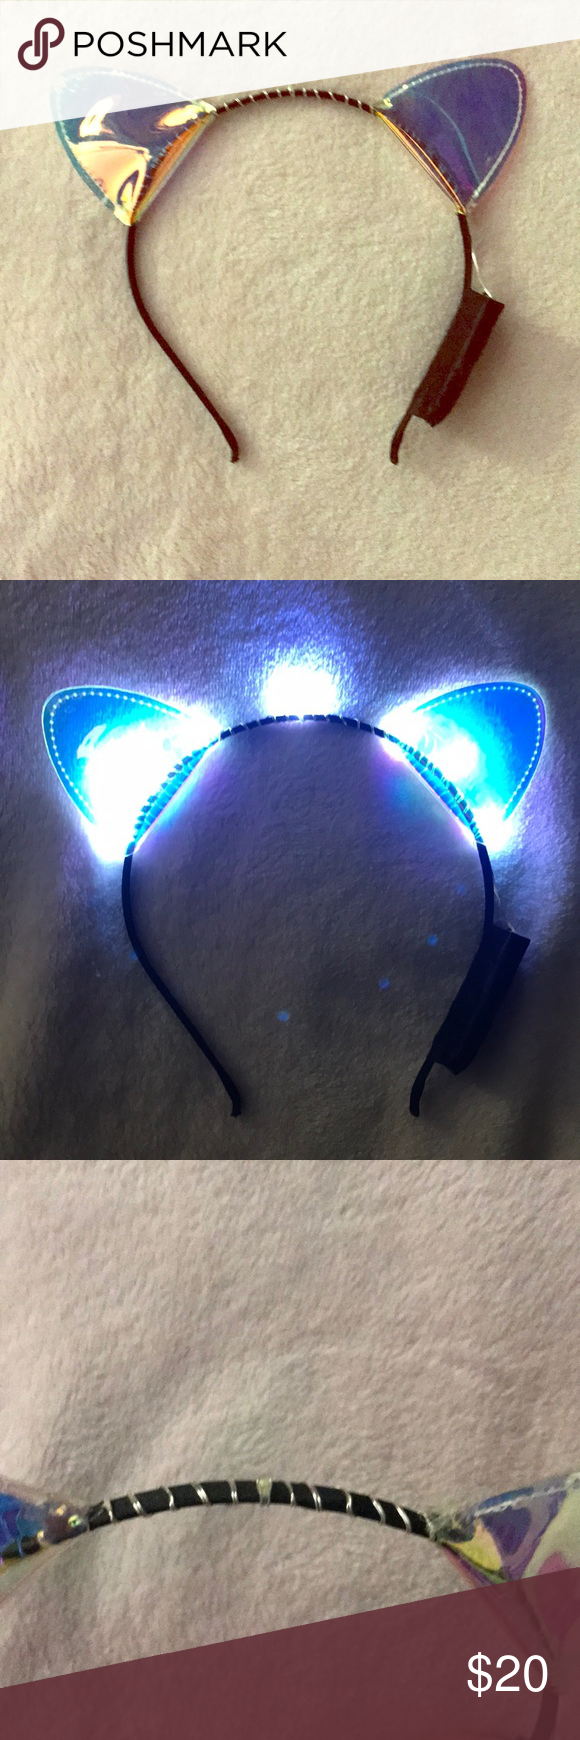 Adorable Claire S Light Up Cat Ears Headband Like New Claire S Adorable Light Up Cat Ears Headband The E Cat Ears Headband Claire S Accessories Things To Sell